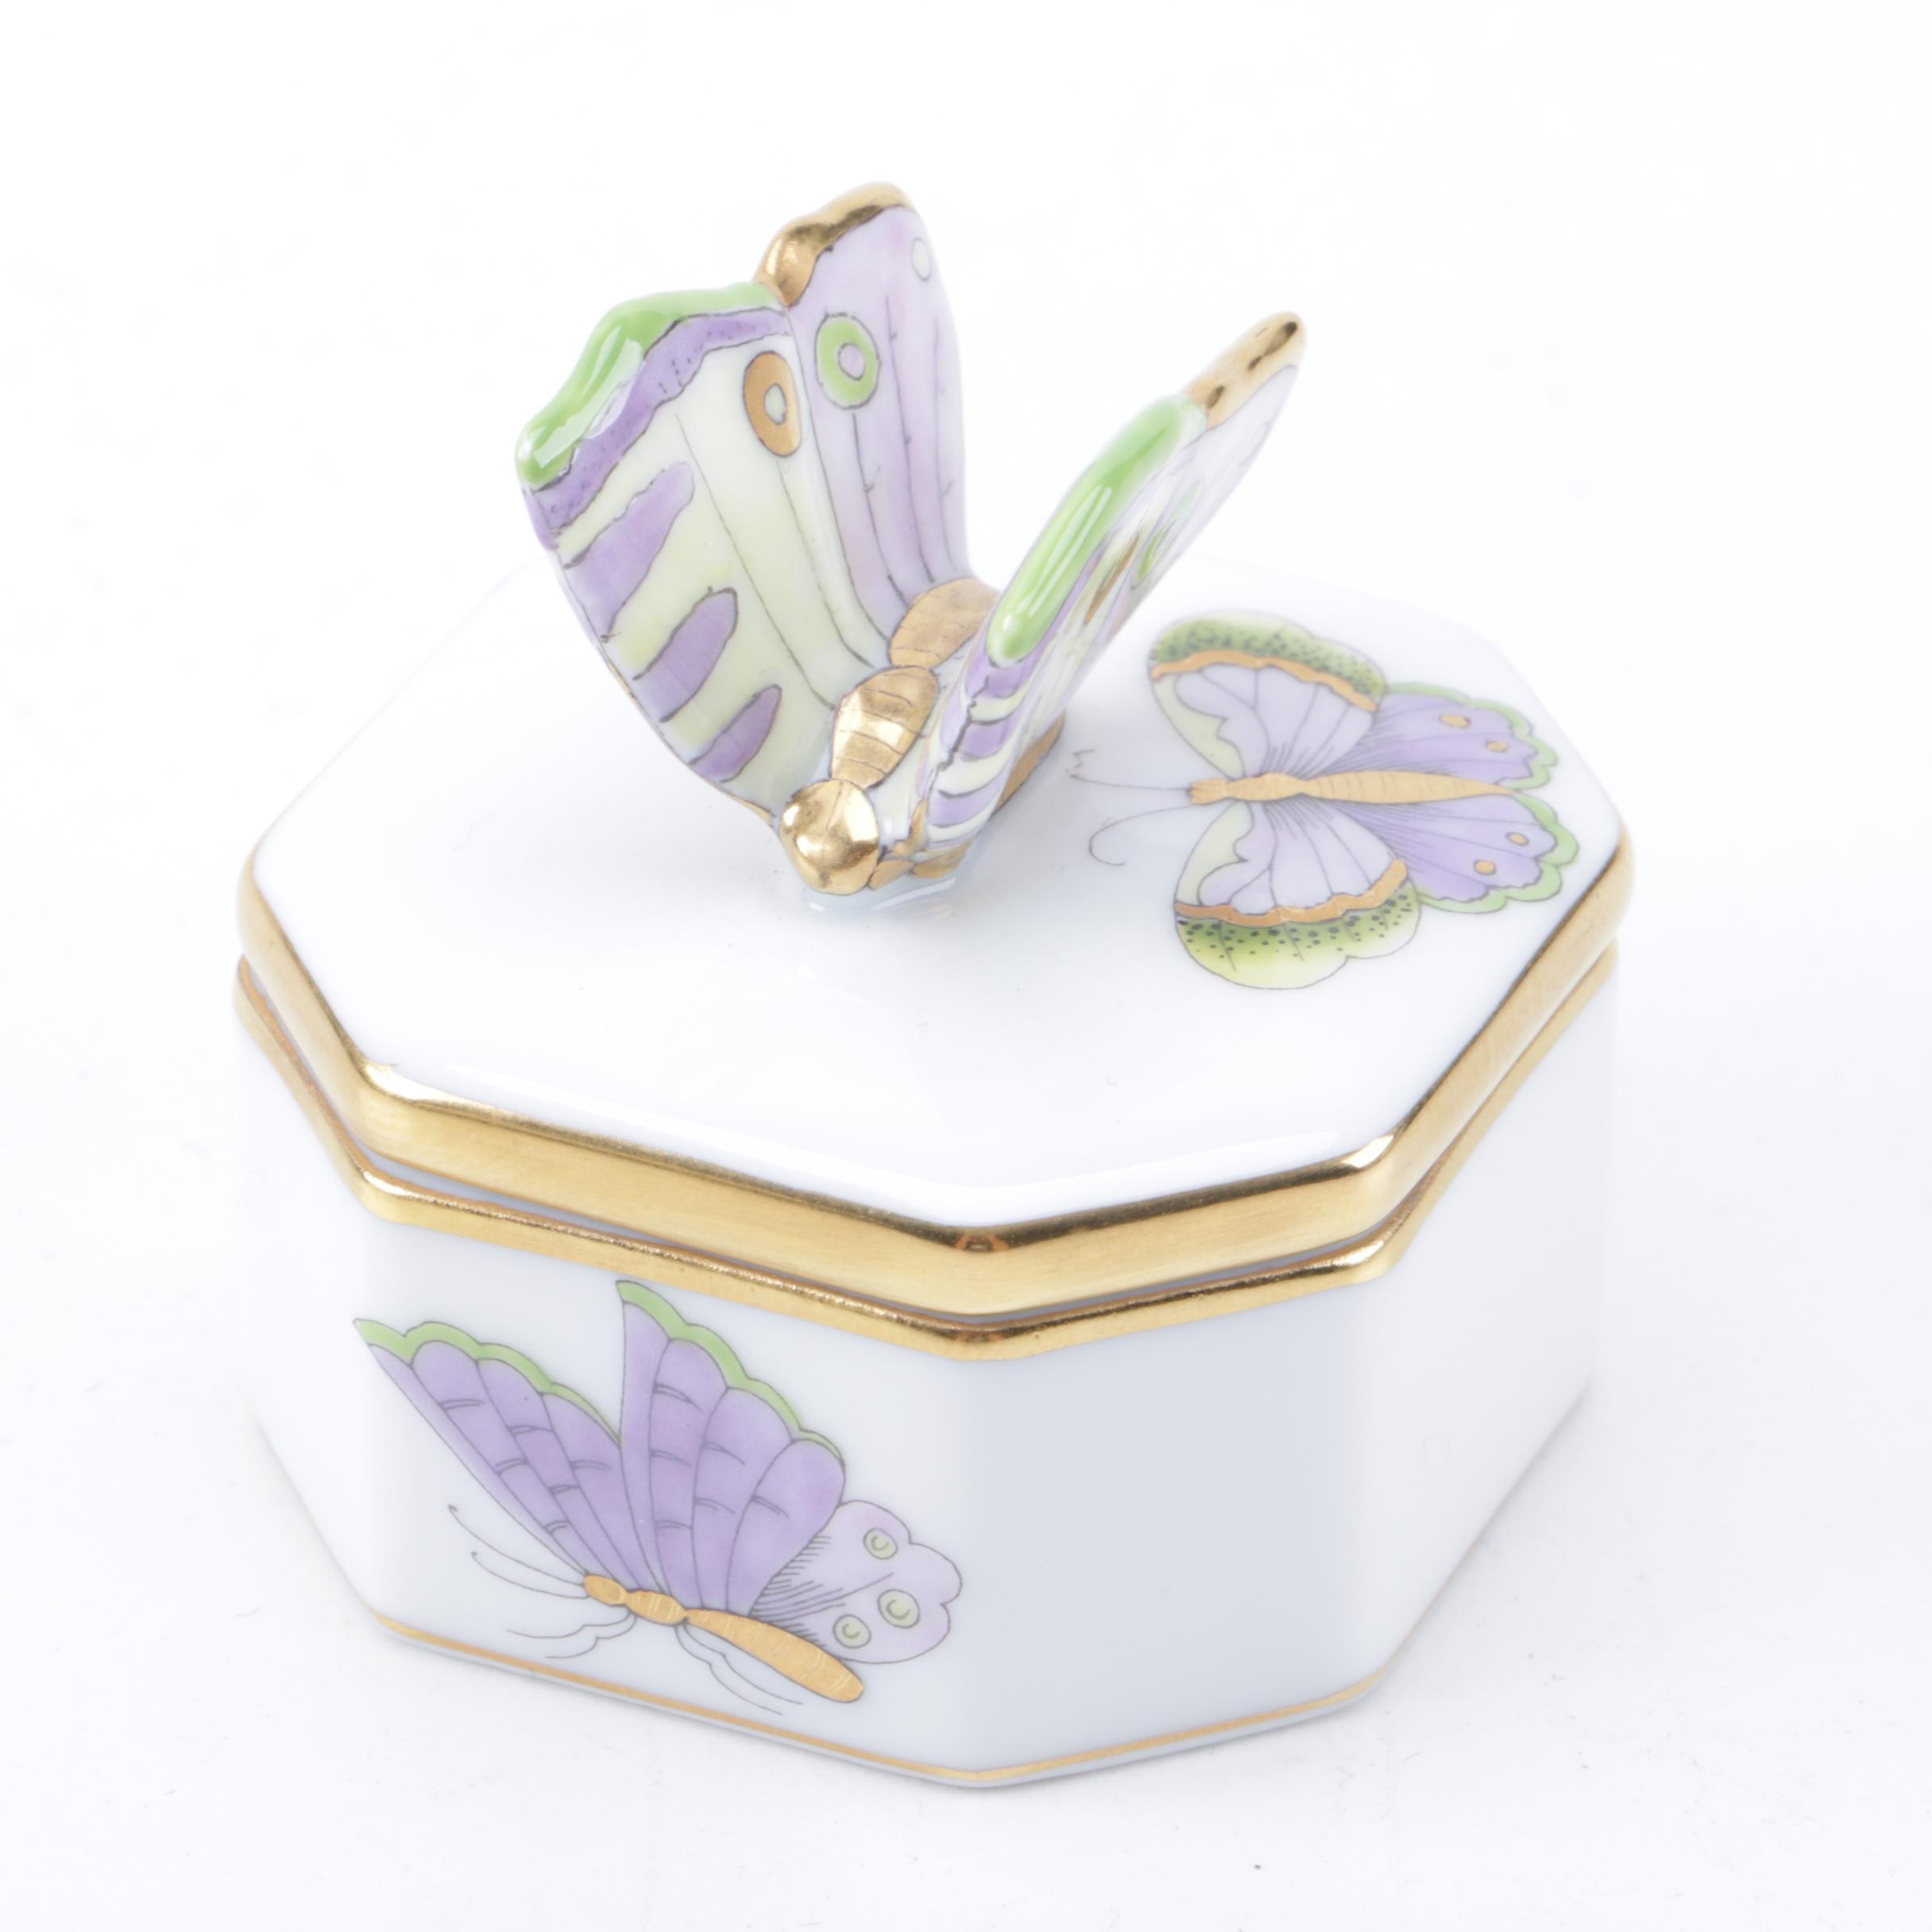 Herend Hungary Trinket Box with Butterfly Motif